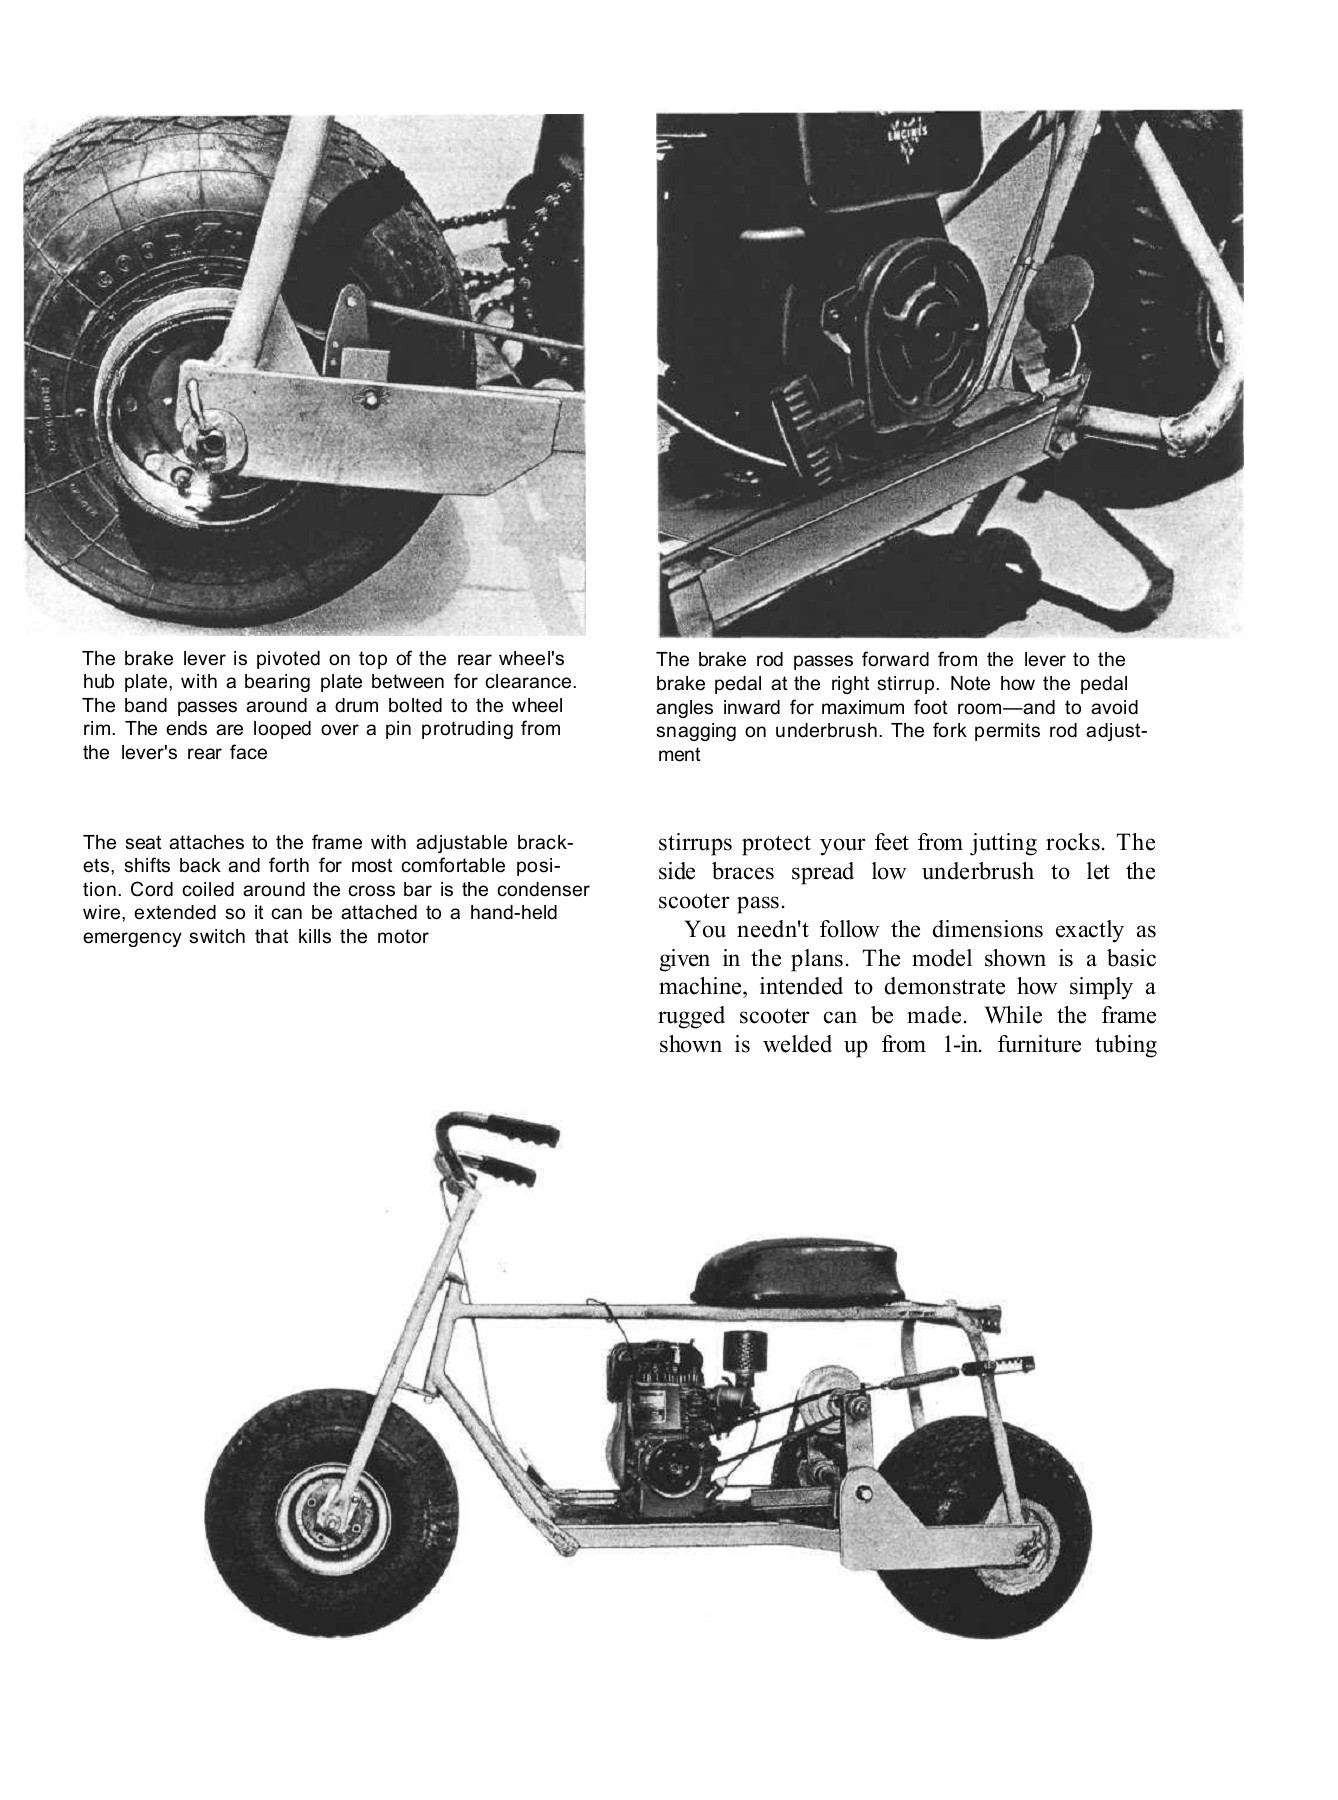 Fat-tire scooter for sportsmen - Green-Trust Org Pages 1 - 5 - Text